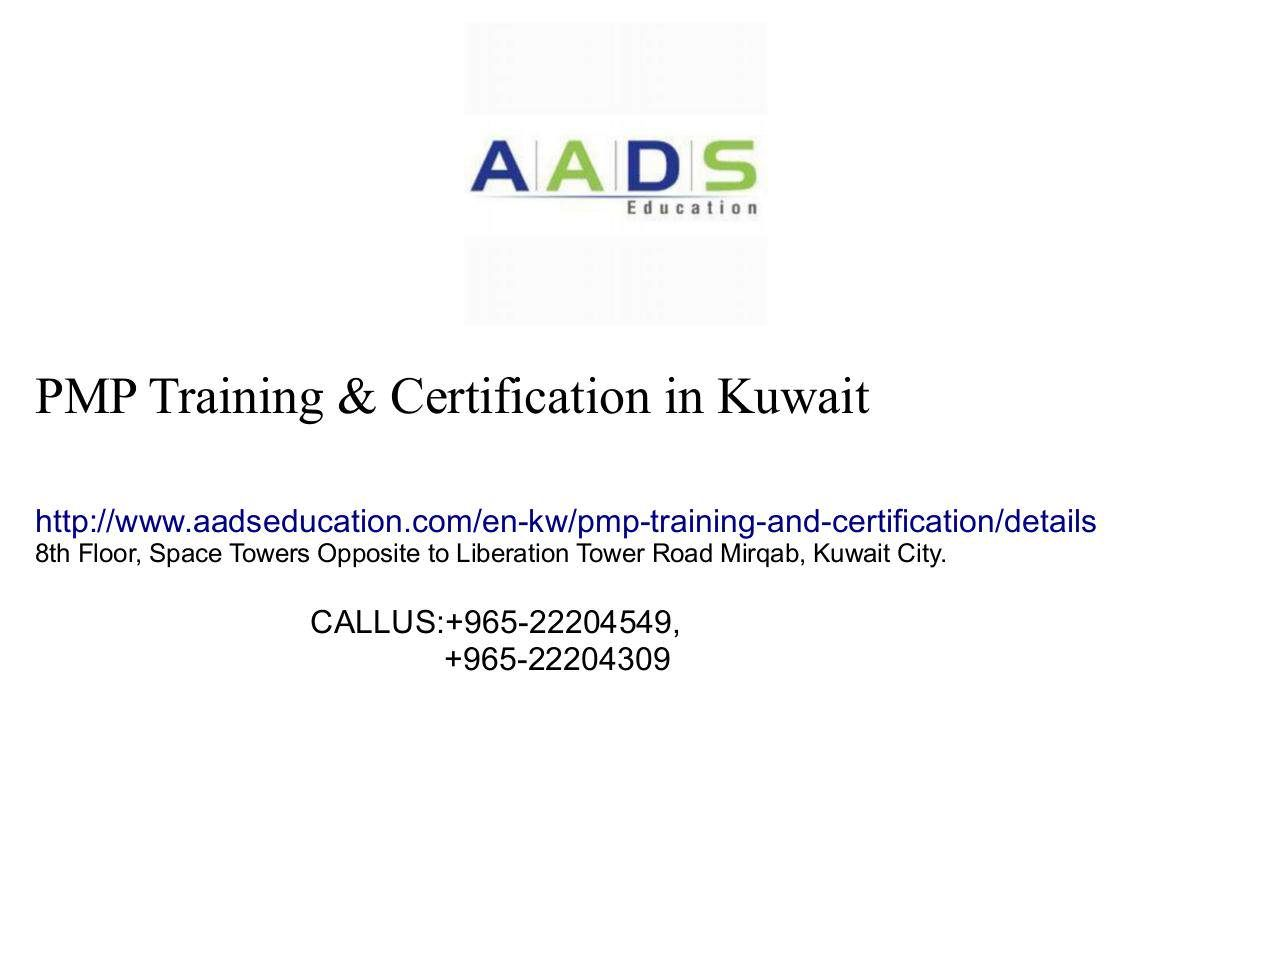 Pmp Certification Training In Kuwait Aads Education Published By